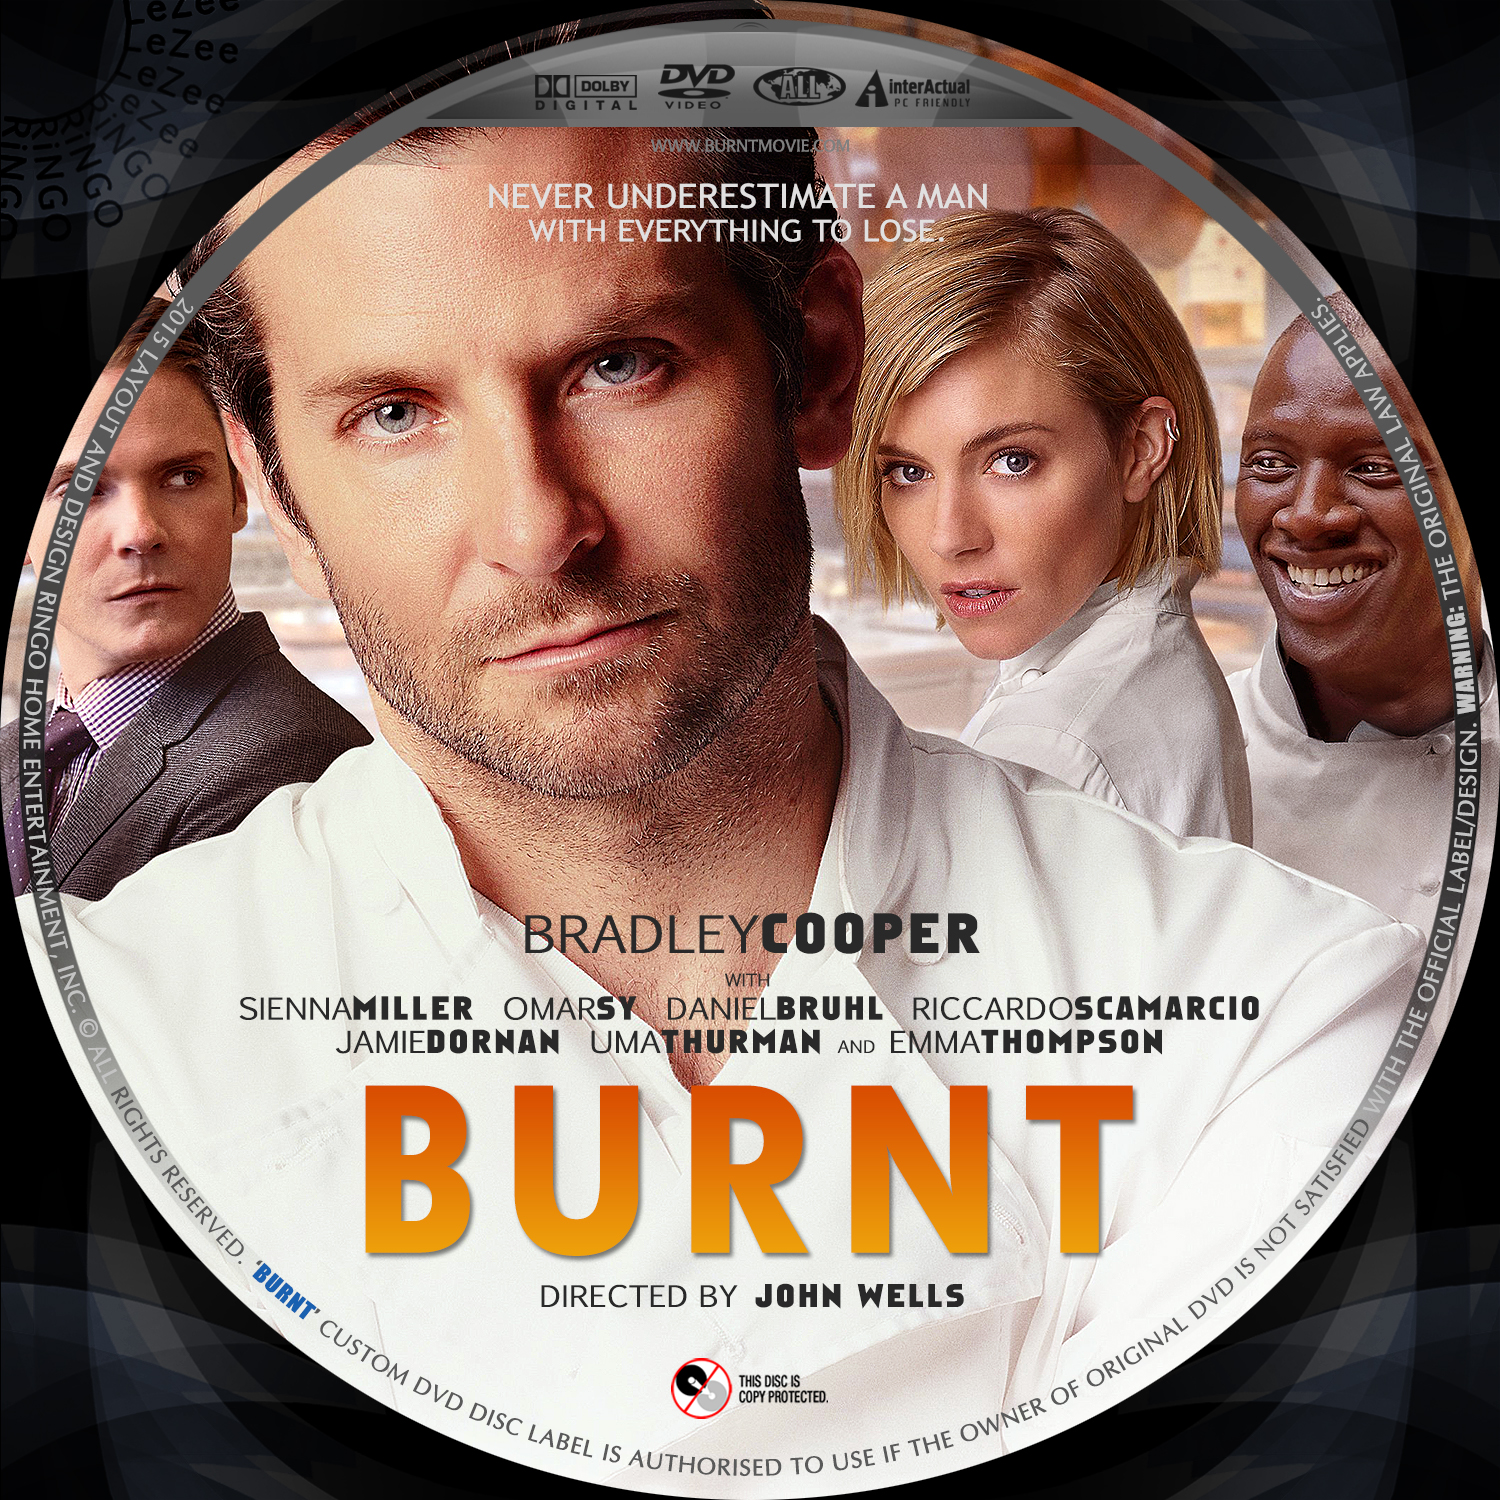 Burn Blurays A How To Guide For Burning BDR discs